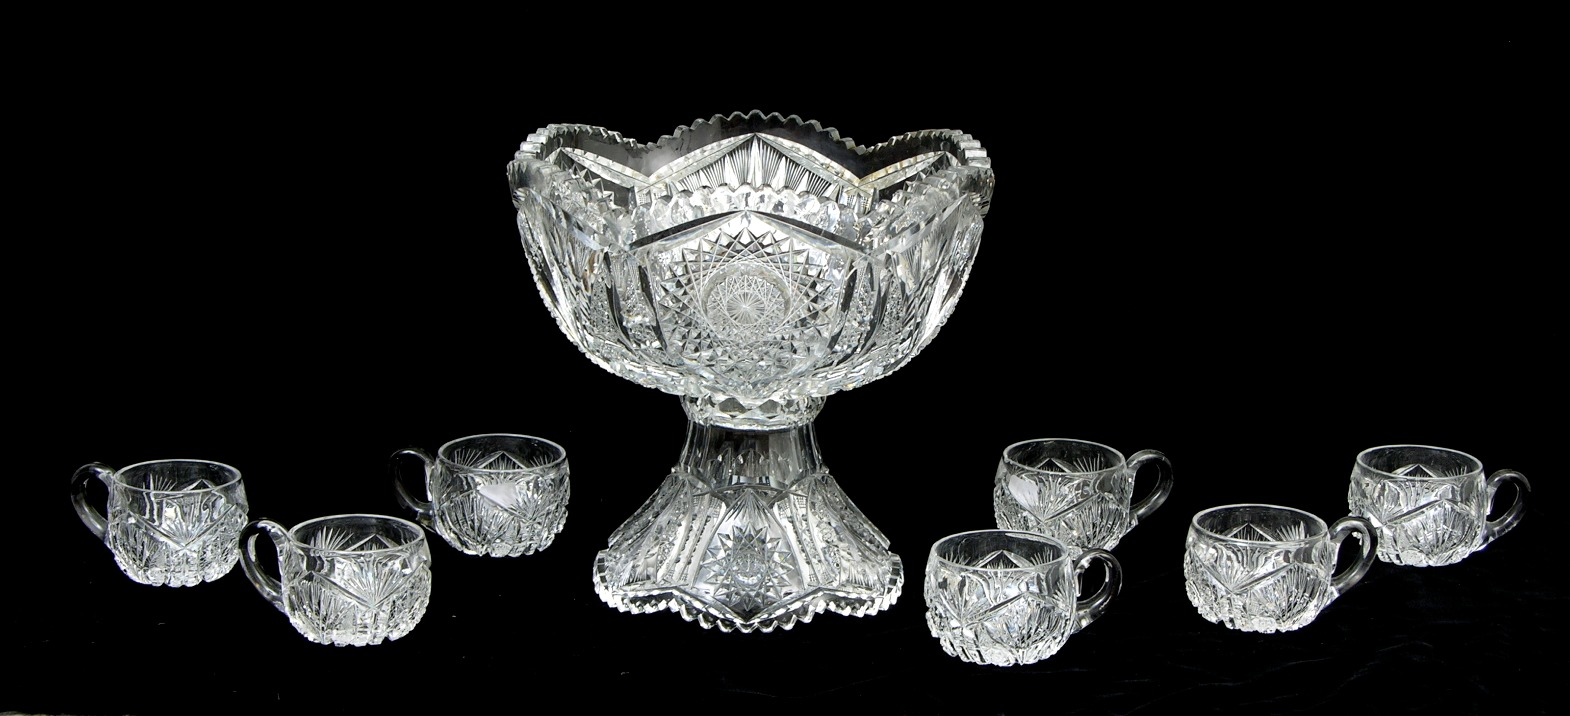 Brilliant Cut Glass Punch Bowl a Brilliant Cut Glass Punch